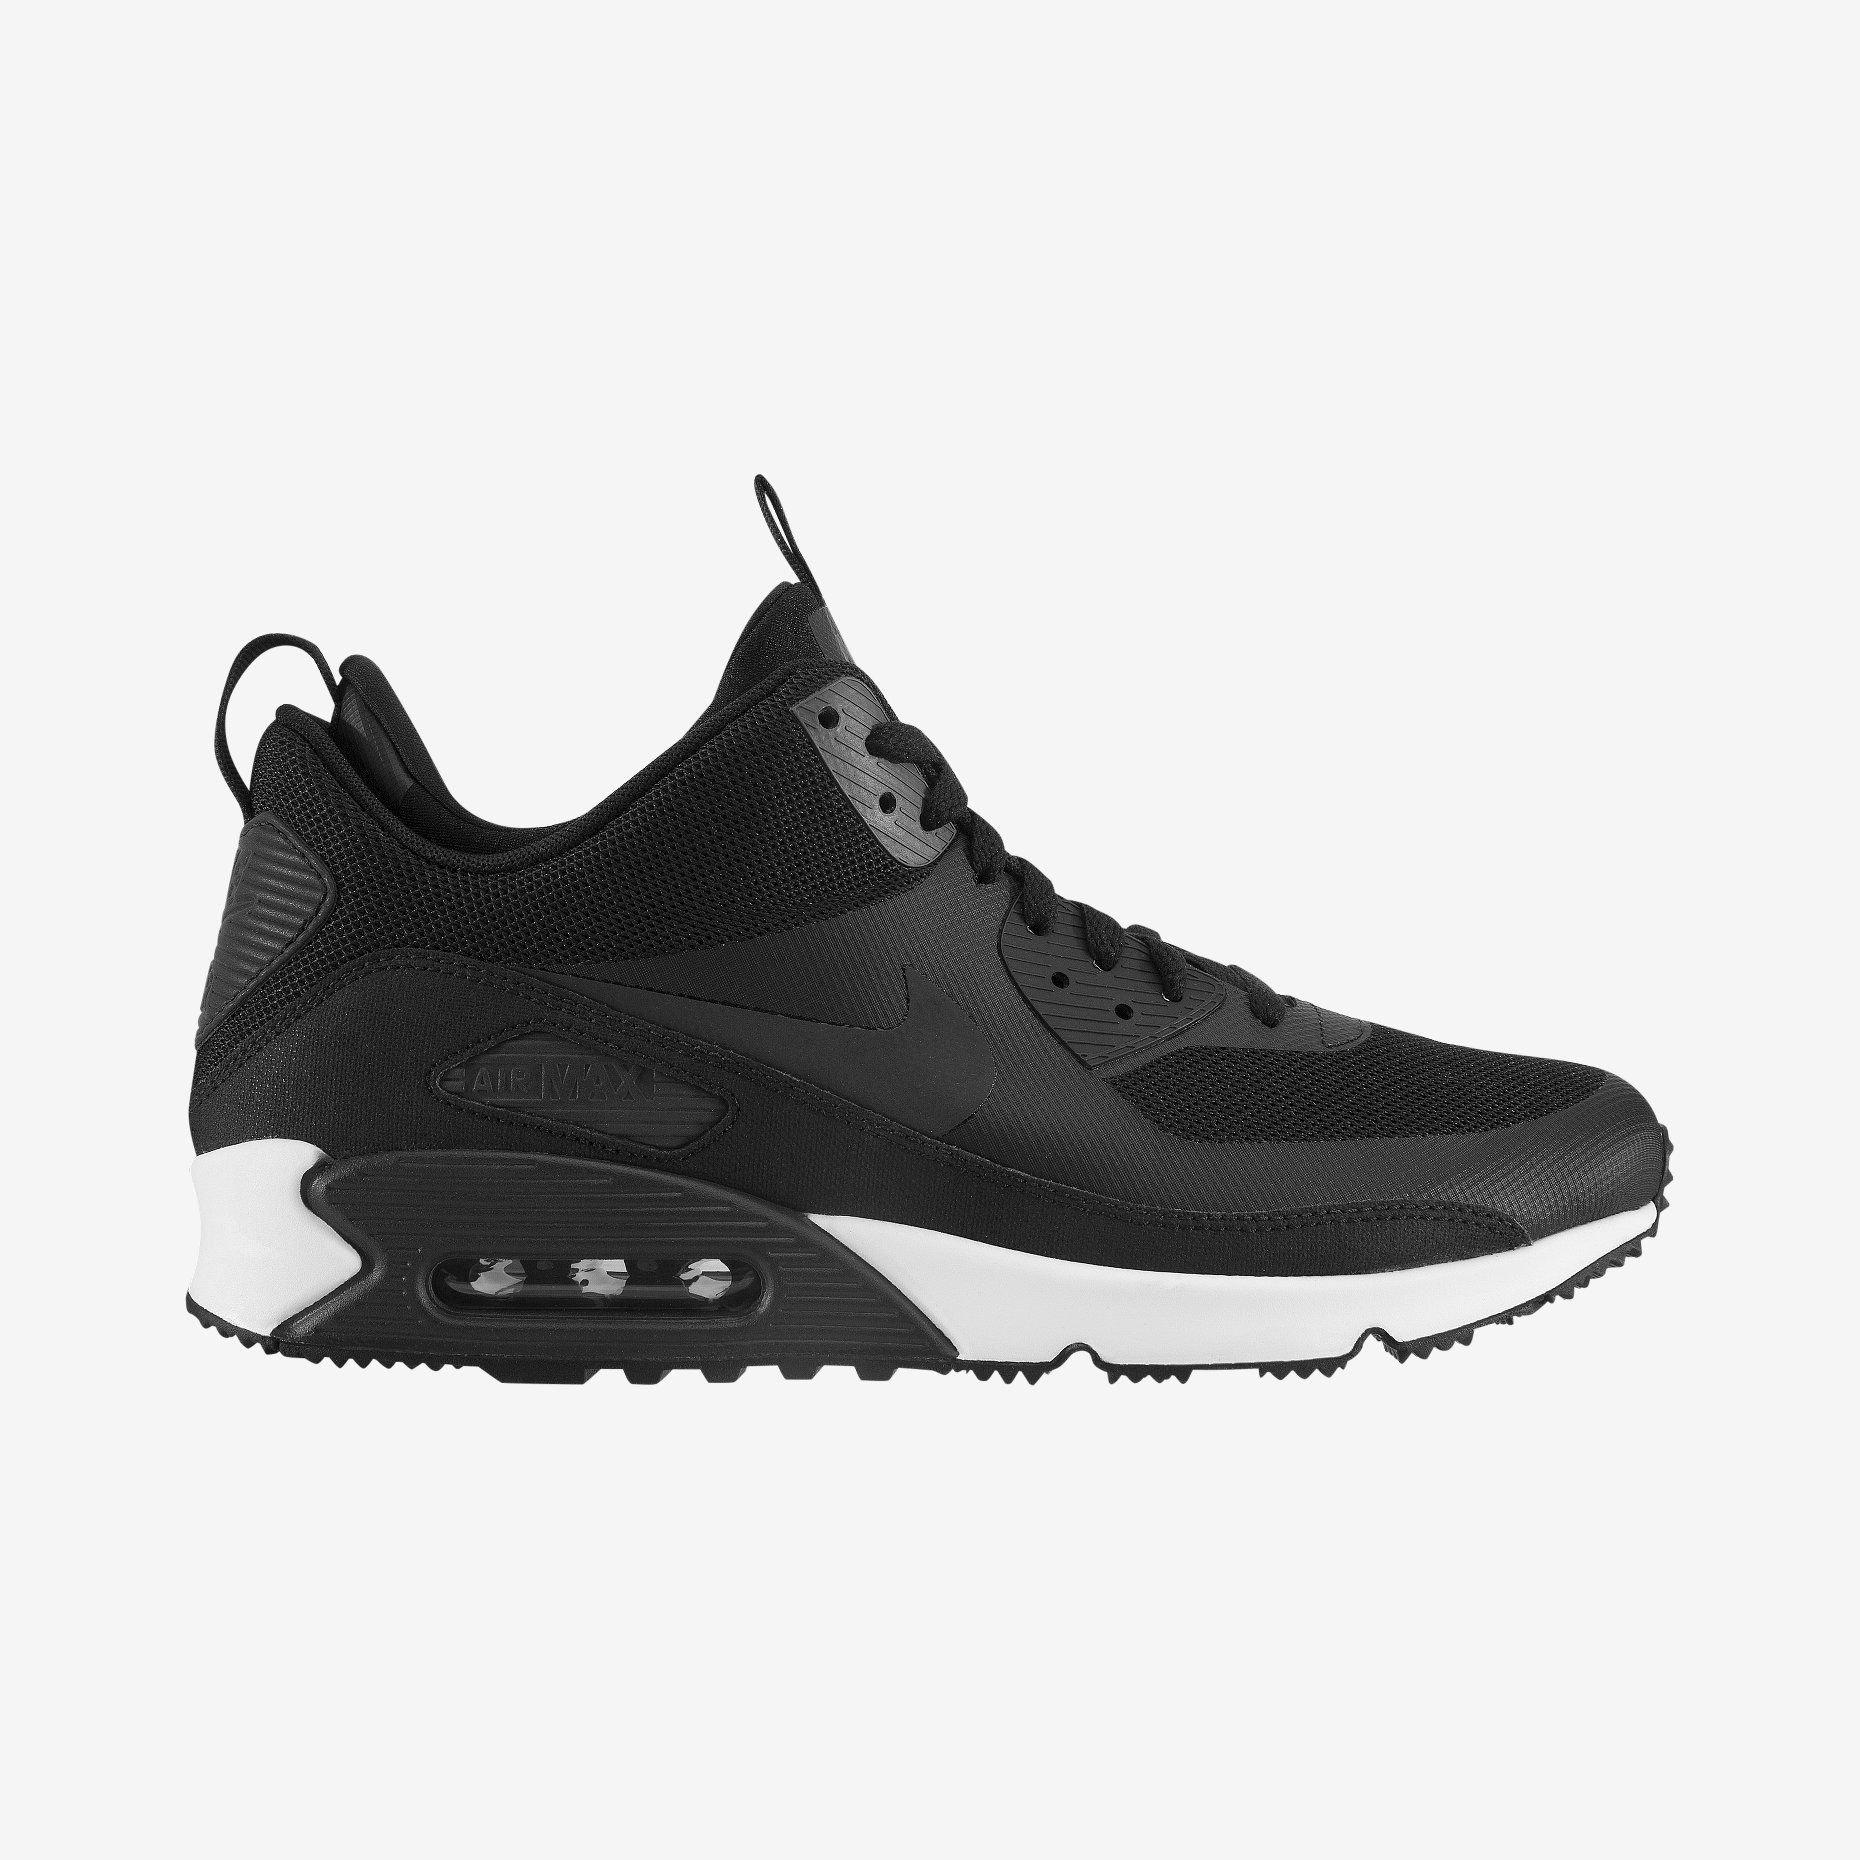 nike air max 90 waterproof sneakers boots black